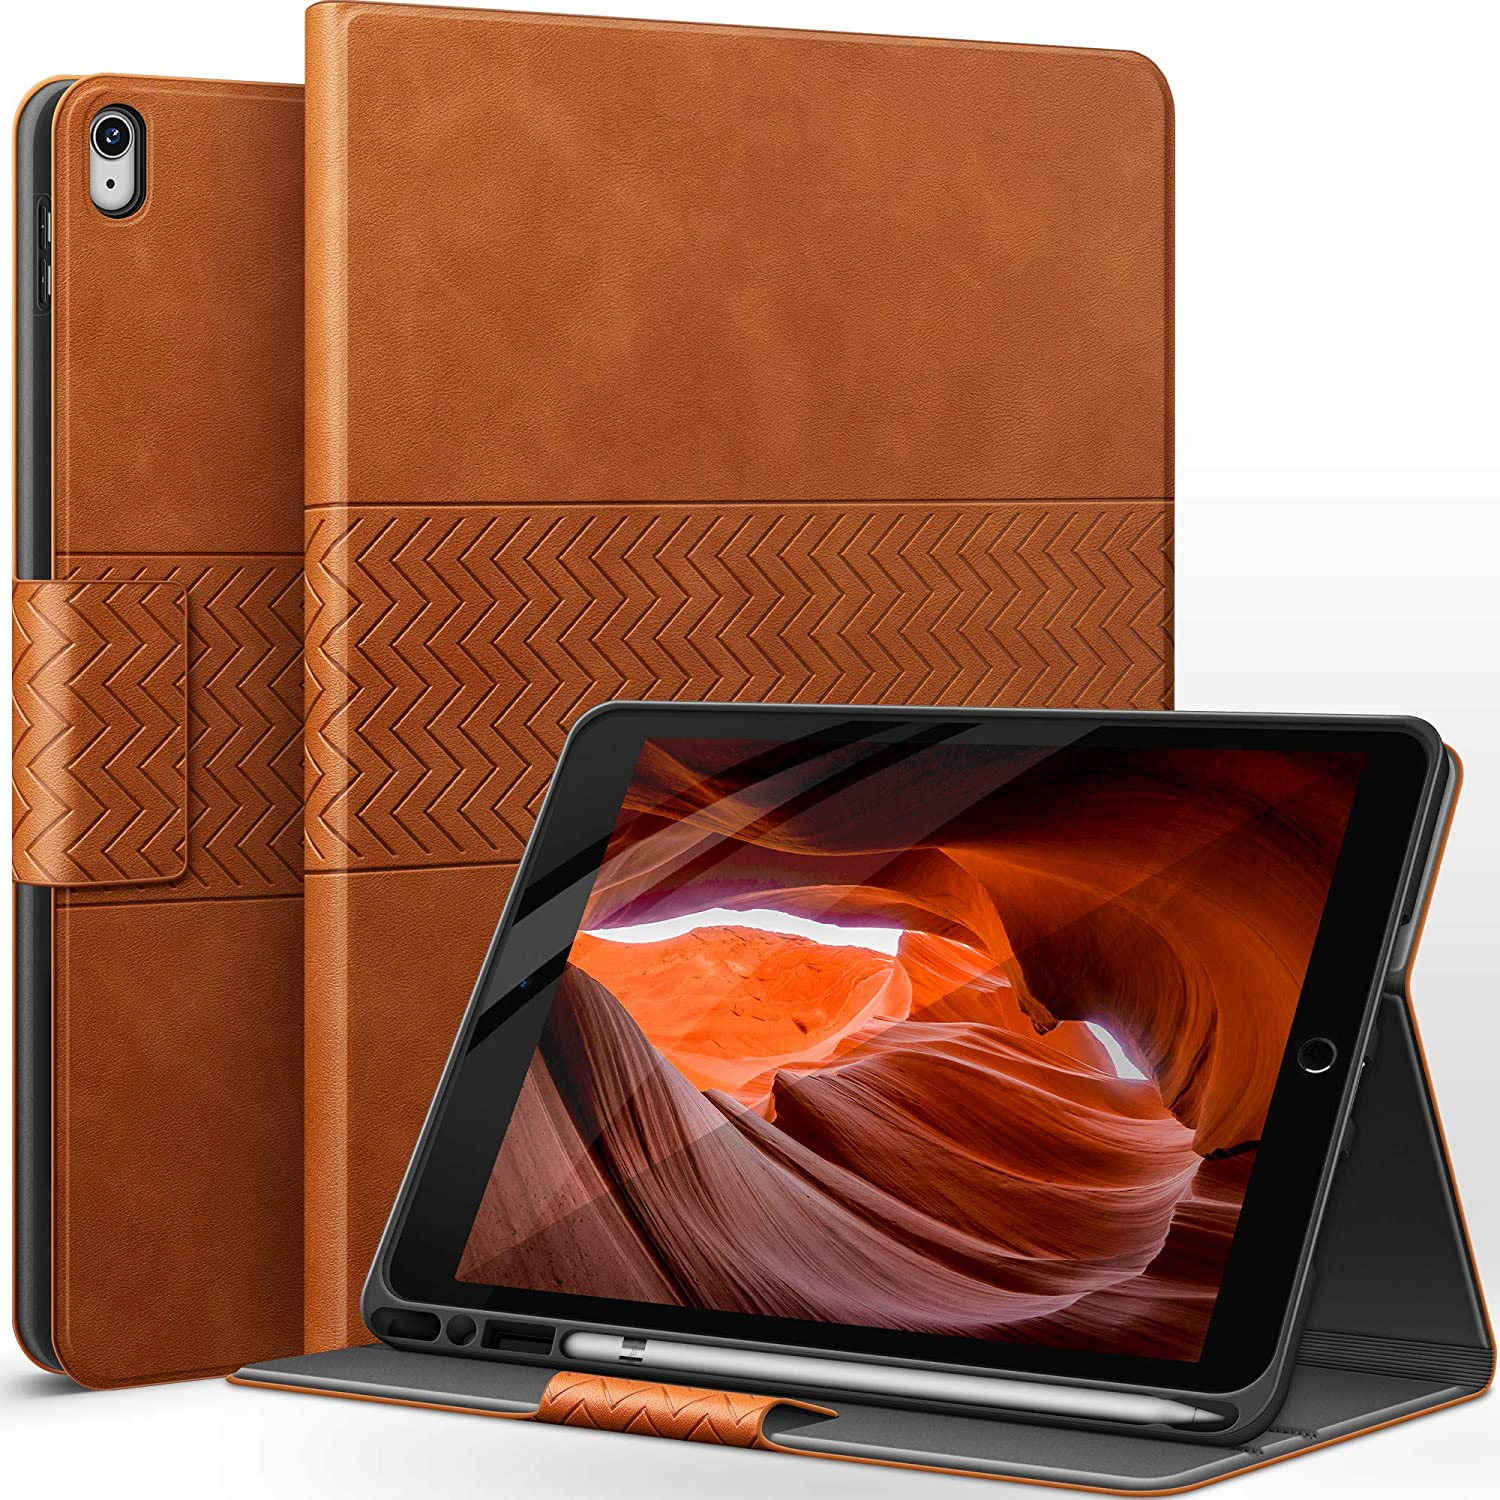 auaua iPad Air 3rd Generation Case/iPad Pro 10.5 Case with Built-in Apple Pencil Holder Auto Sleep/Wake Function Vegan Leather Smart Cover for iPad Air 3 10.5 Inch 2019/iPad Pro 10.5 2017 (Brown)